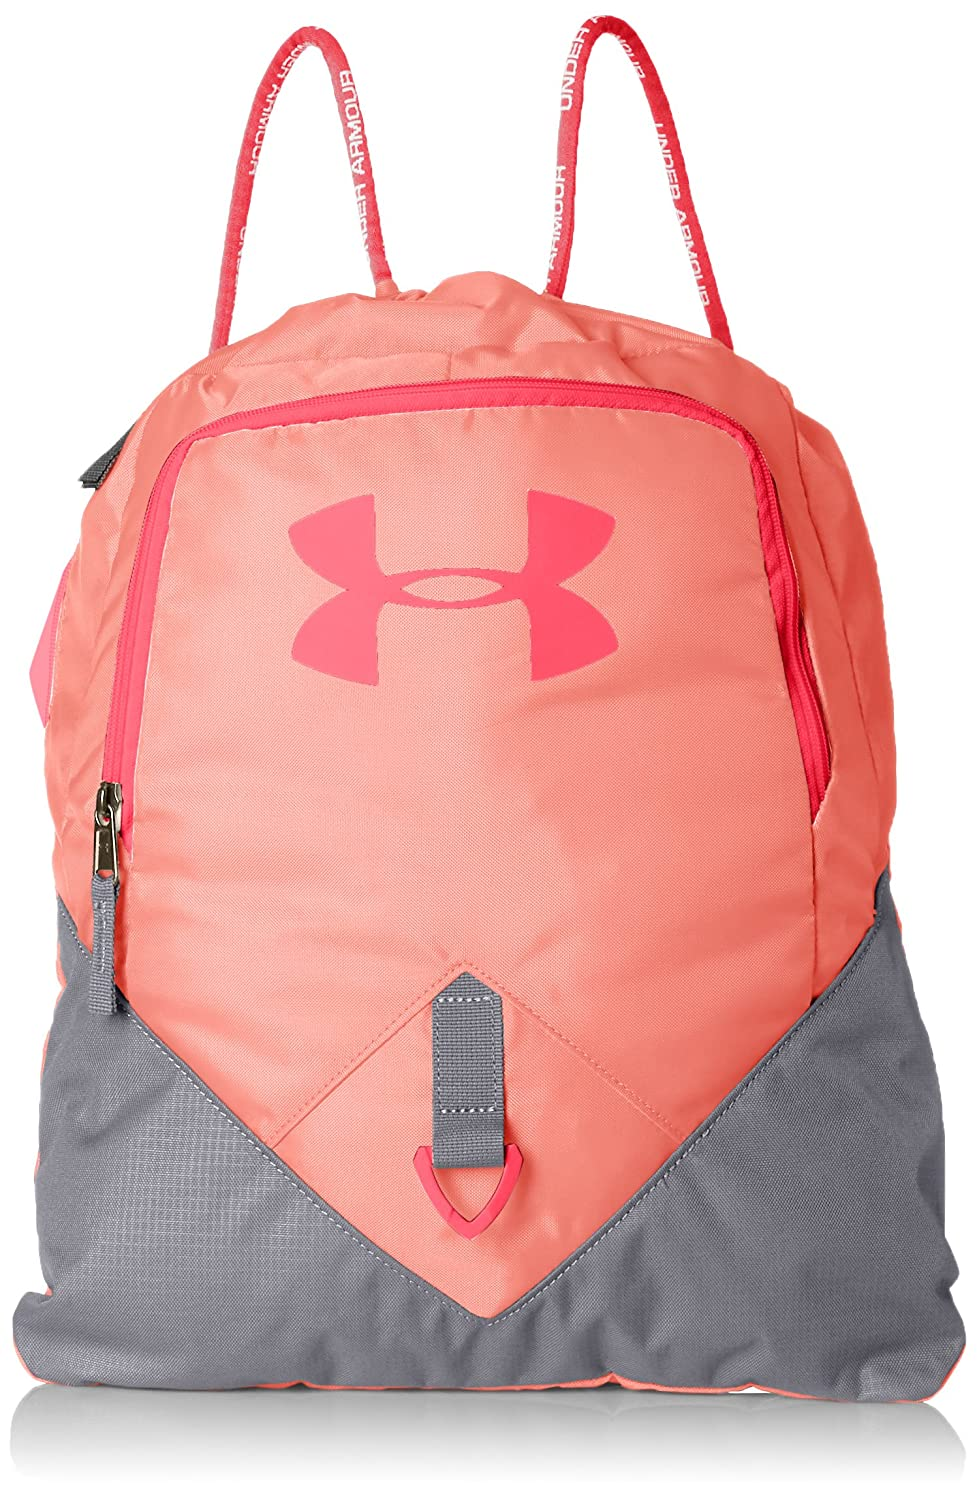 Under Armour Undeniable Unisex Sackpack Black / White / Silver (001) One Size 1261954